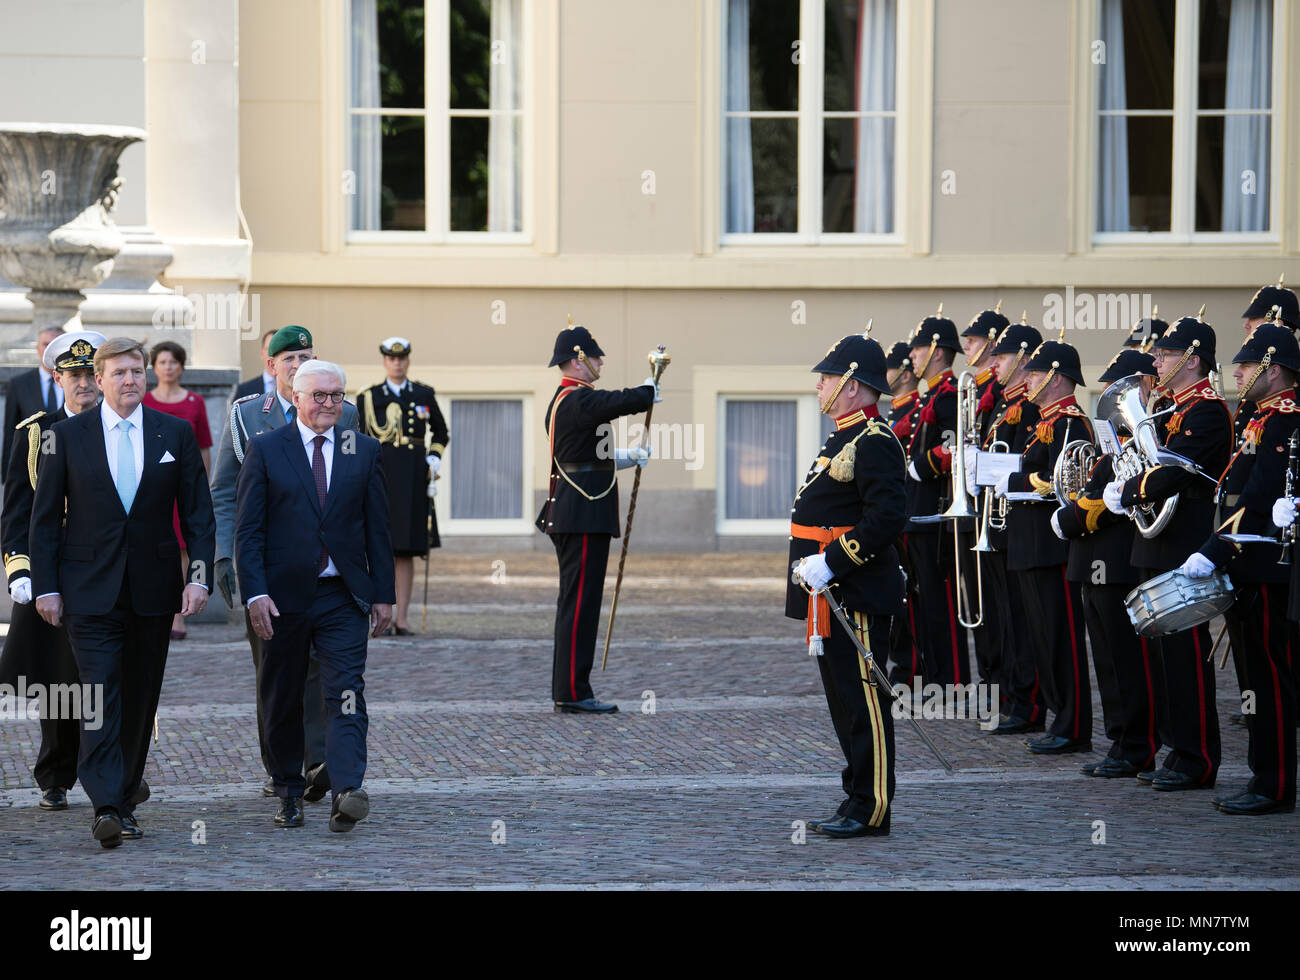 Amsterdam, The Netherlands. 15th May, 2018. German President Frank-Walter Steinmeier (C) is greeted with miliary honours by the King of the Netherlands, King Willem-Alexander (L), in the Palace Gardens. Photo: Soeren Stache/dpa Credit: dpa picture alliance/Alamy Live News Credit: dpa picture alliance/Alamy Live News Stock Photo